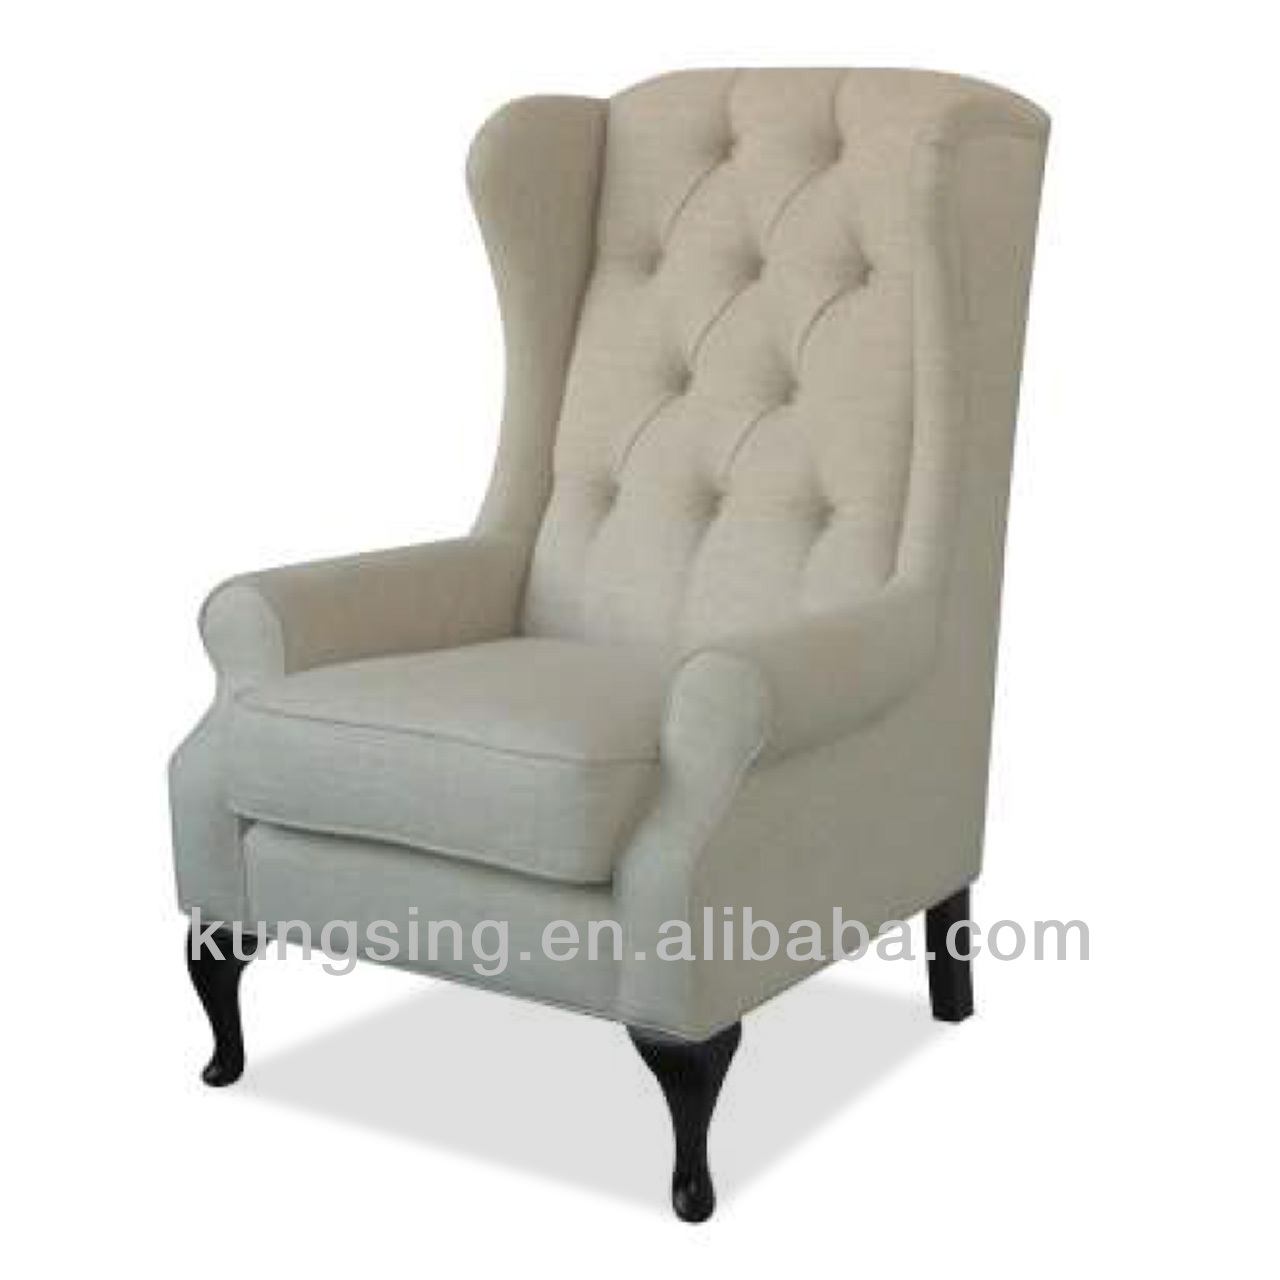 Button Tufted Back Wing Chair   Buy Wing Chair,Button Back Chair,Button Tufted  Chair Product On Alibaba.com